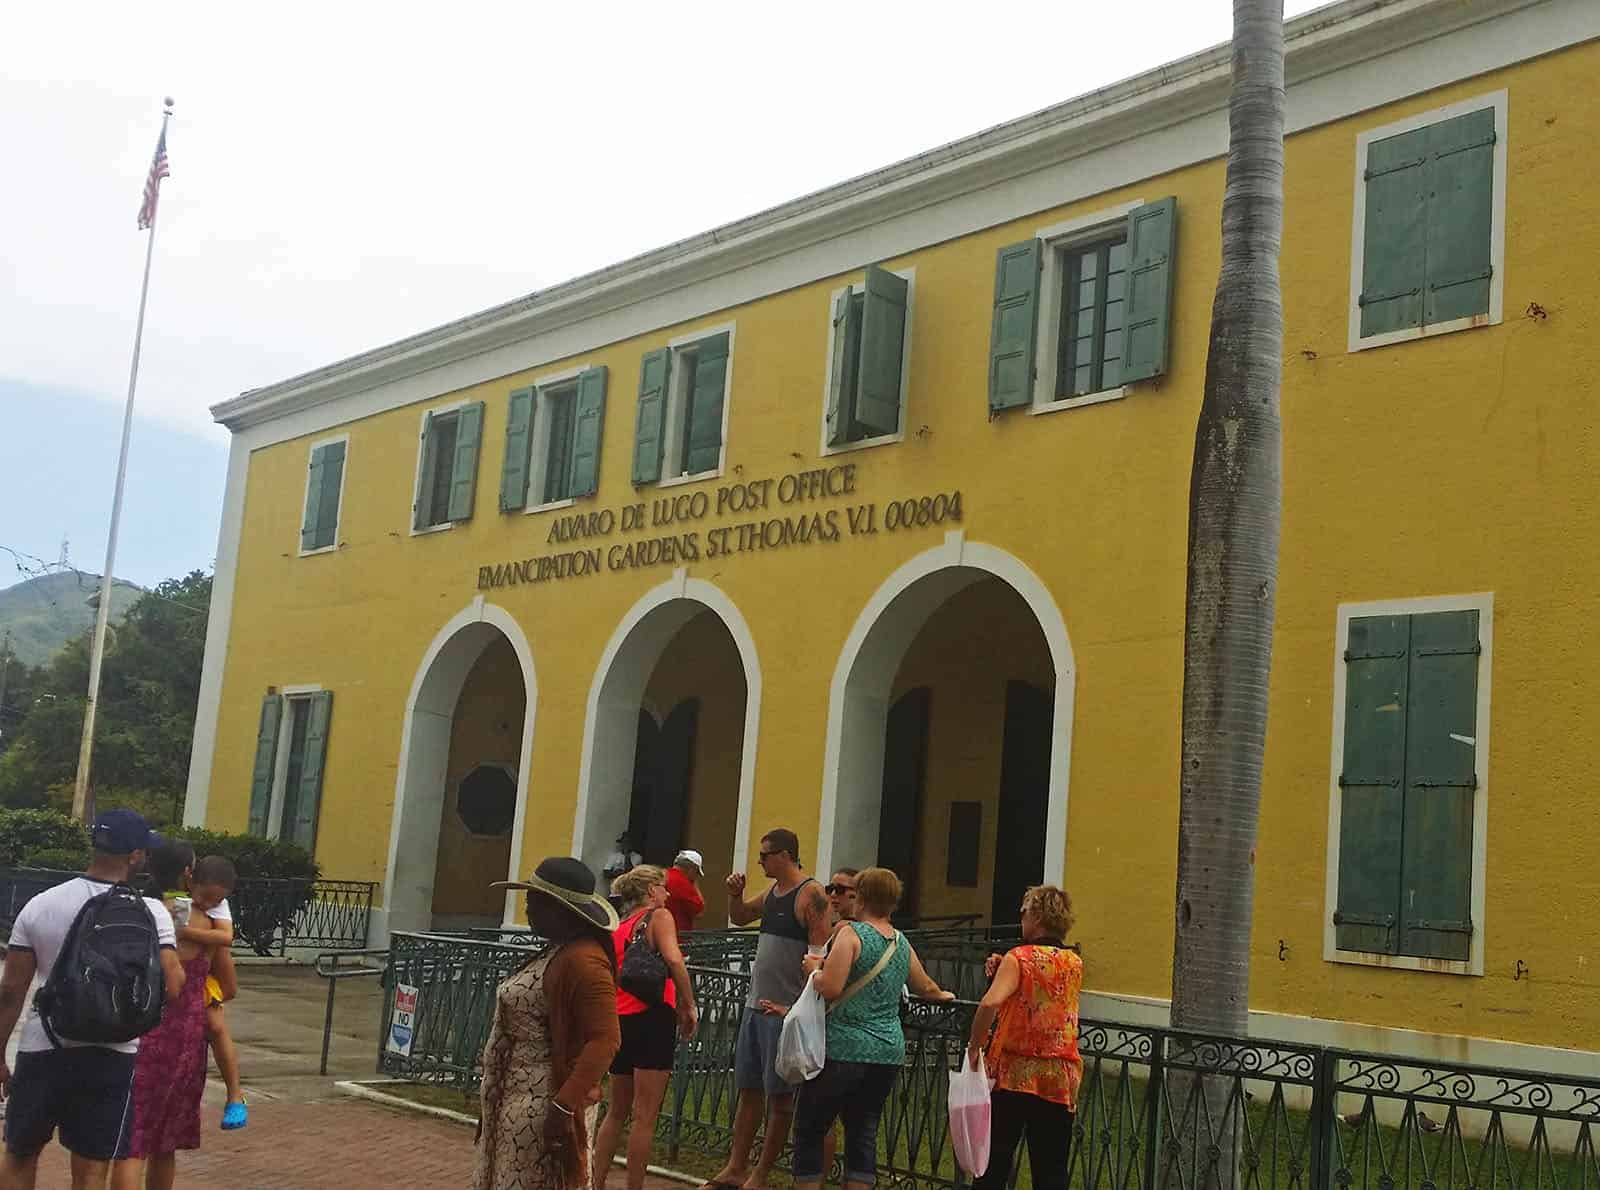 Post Office - Downtown Charlotte Amalie, St. Thomas